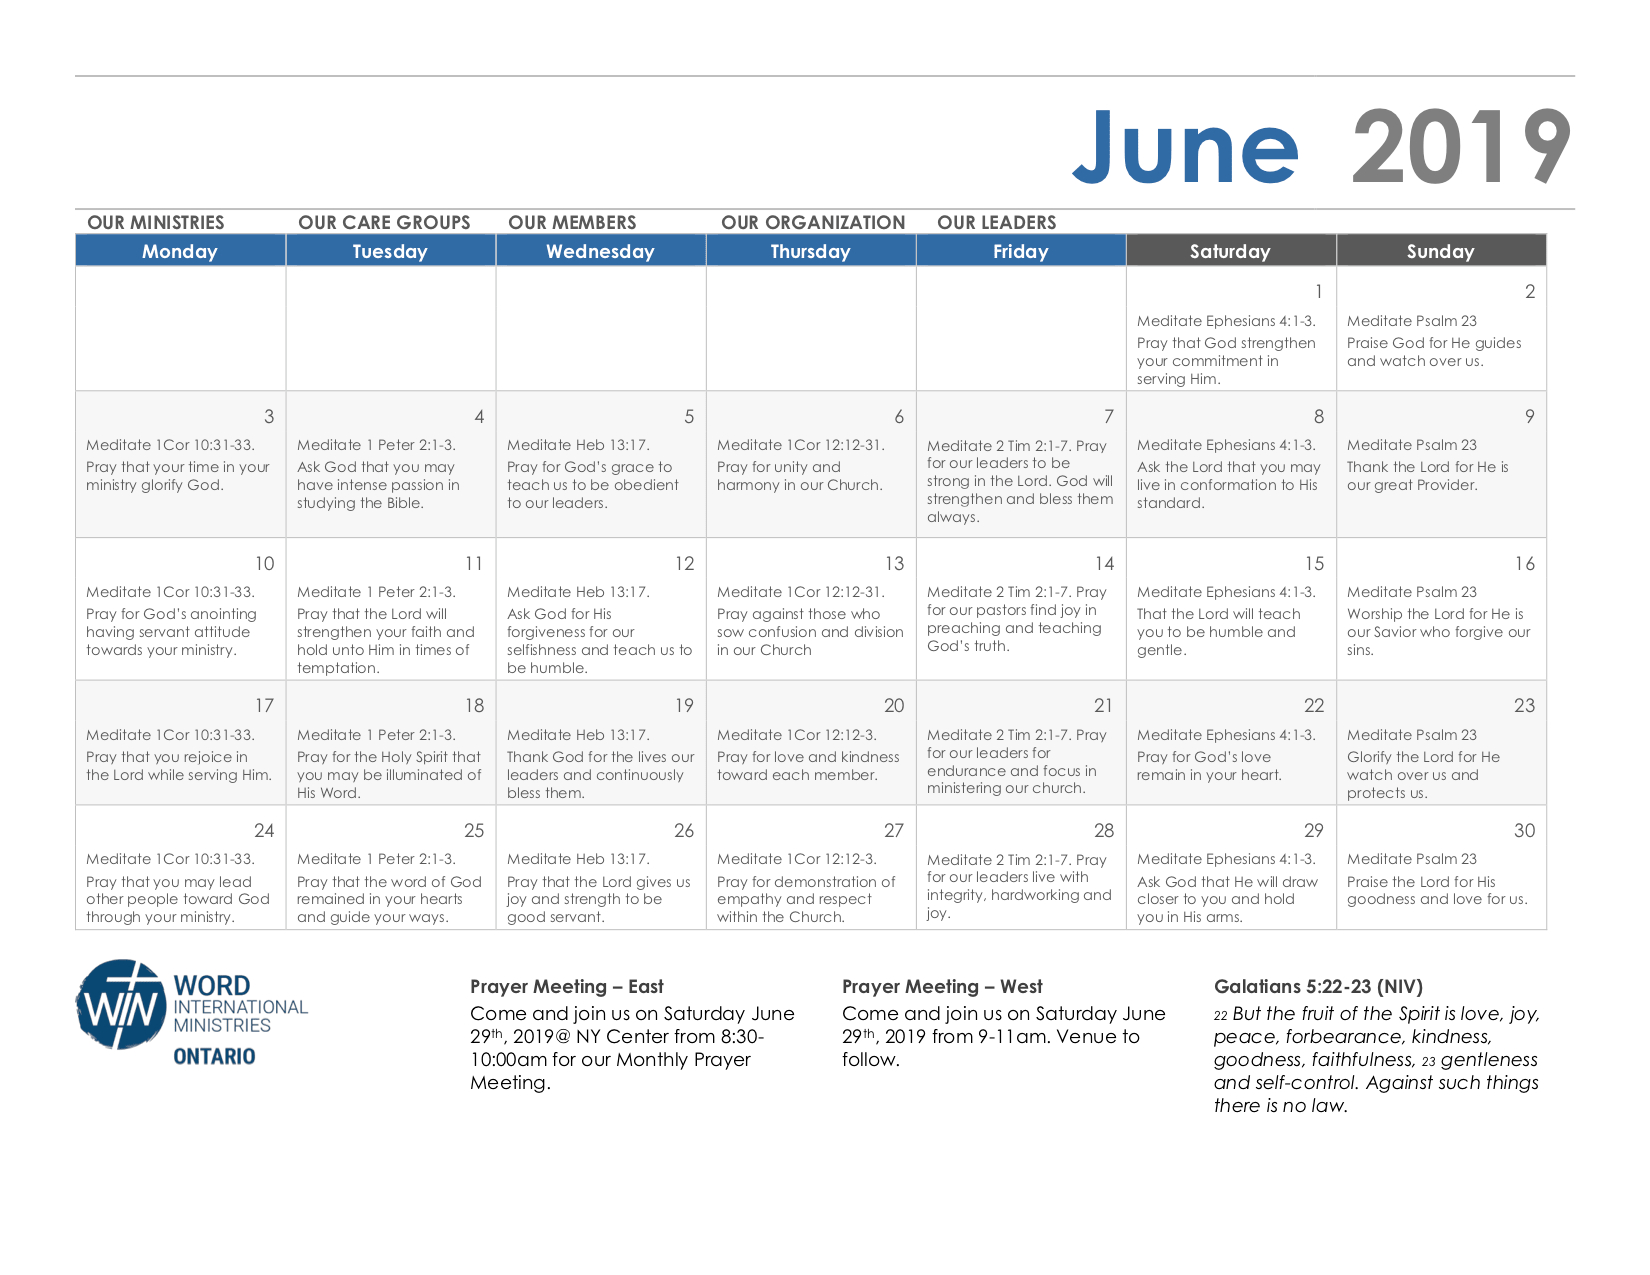 June 2019 Calendar Min - Word International Ministries Of Ontario Calendar 2019 Ontario